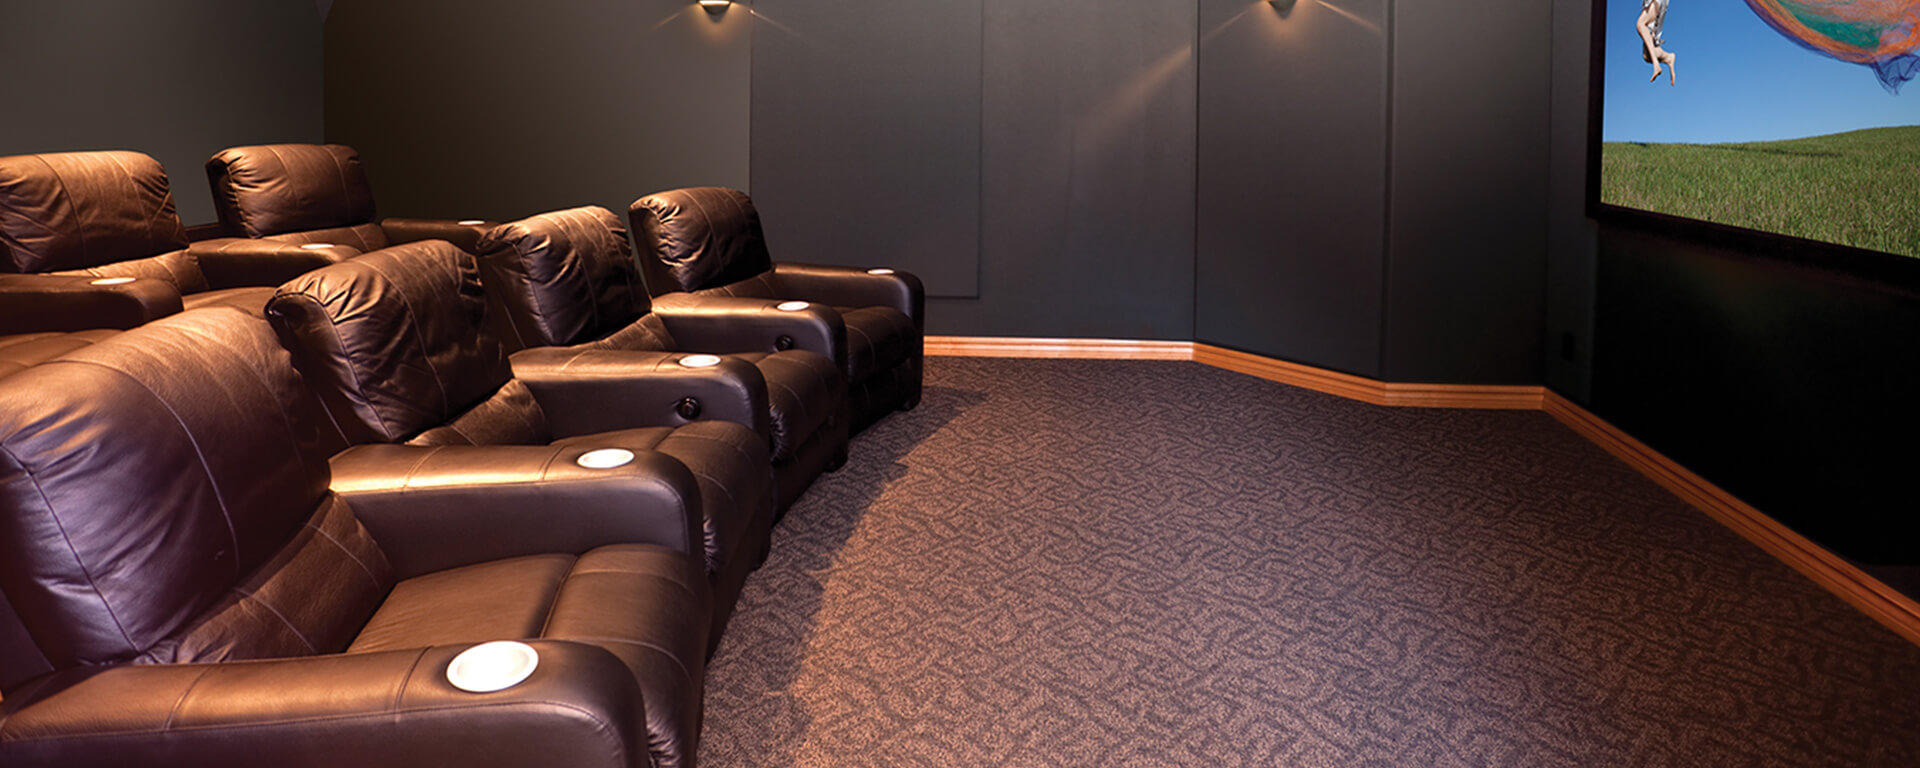 Private AV Room